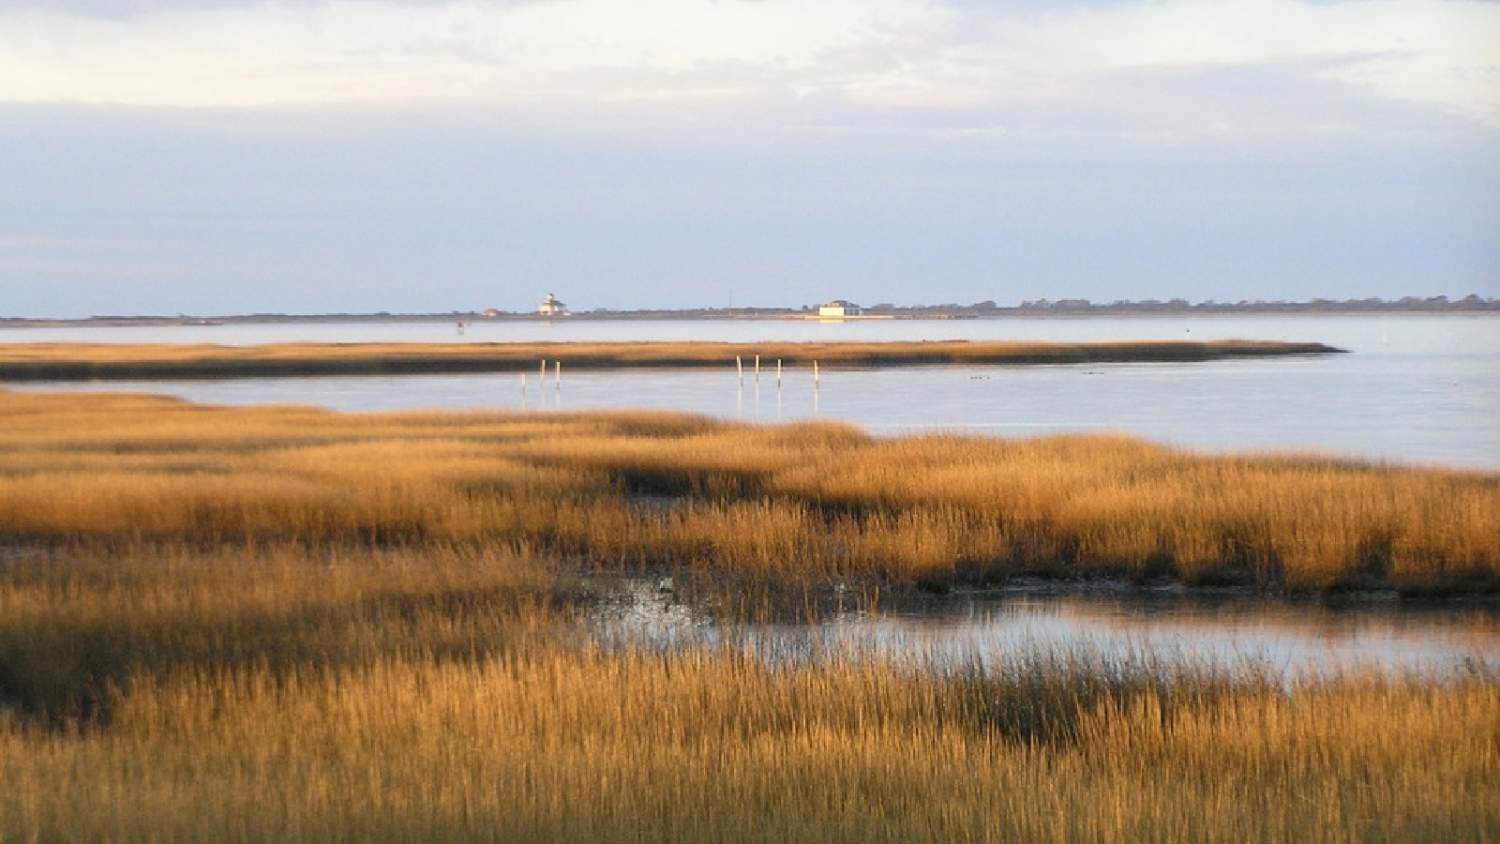 Salt marsh on Toms Cove, overlooking the Coast Guard Station and boathouse